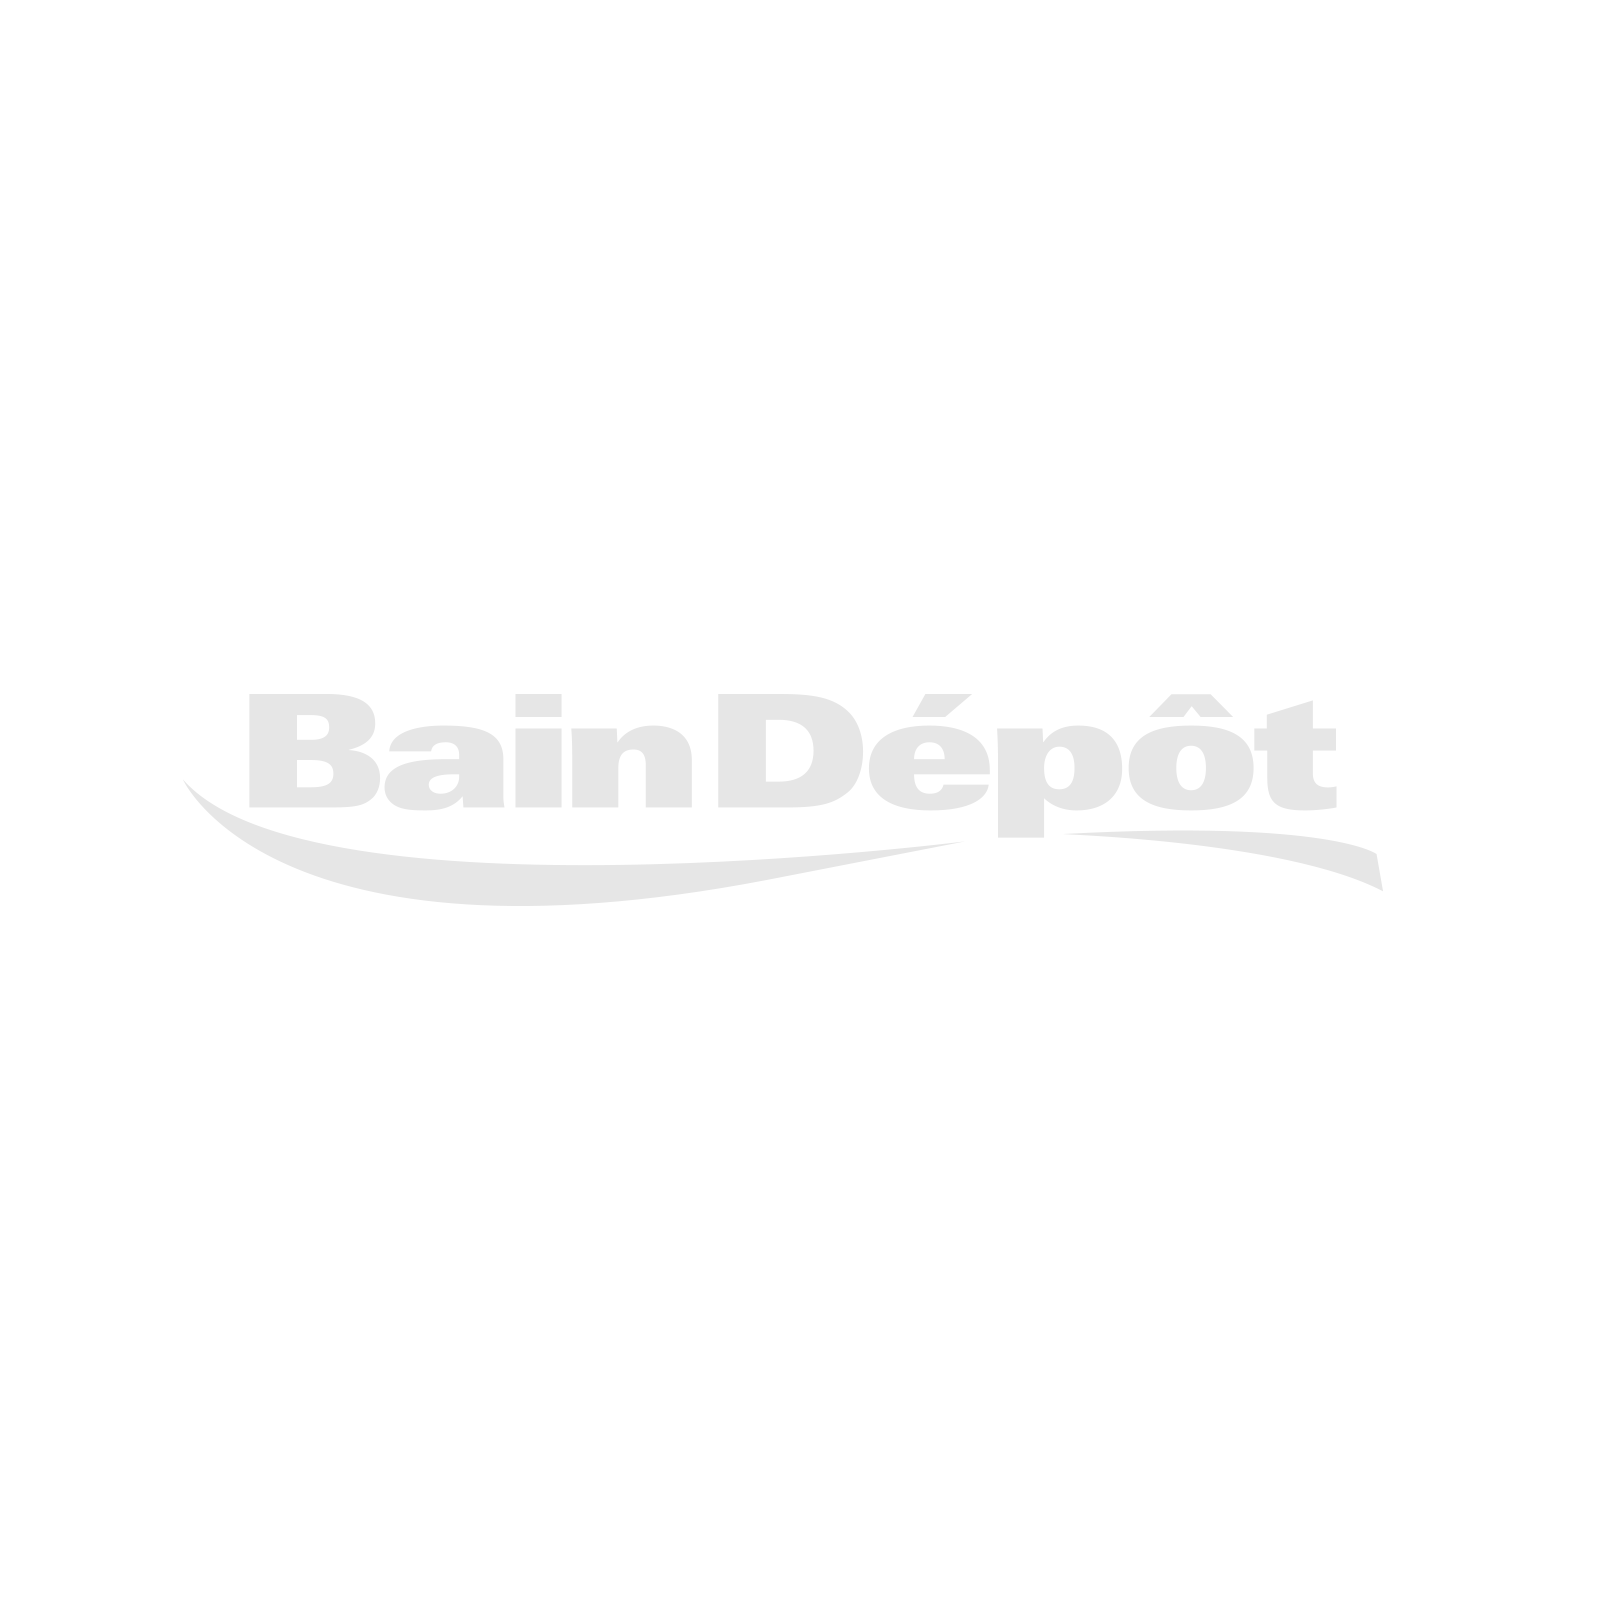 Brushed nickel rounded kitchen faucet with pull-down flared spray